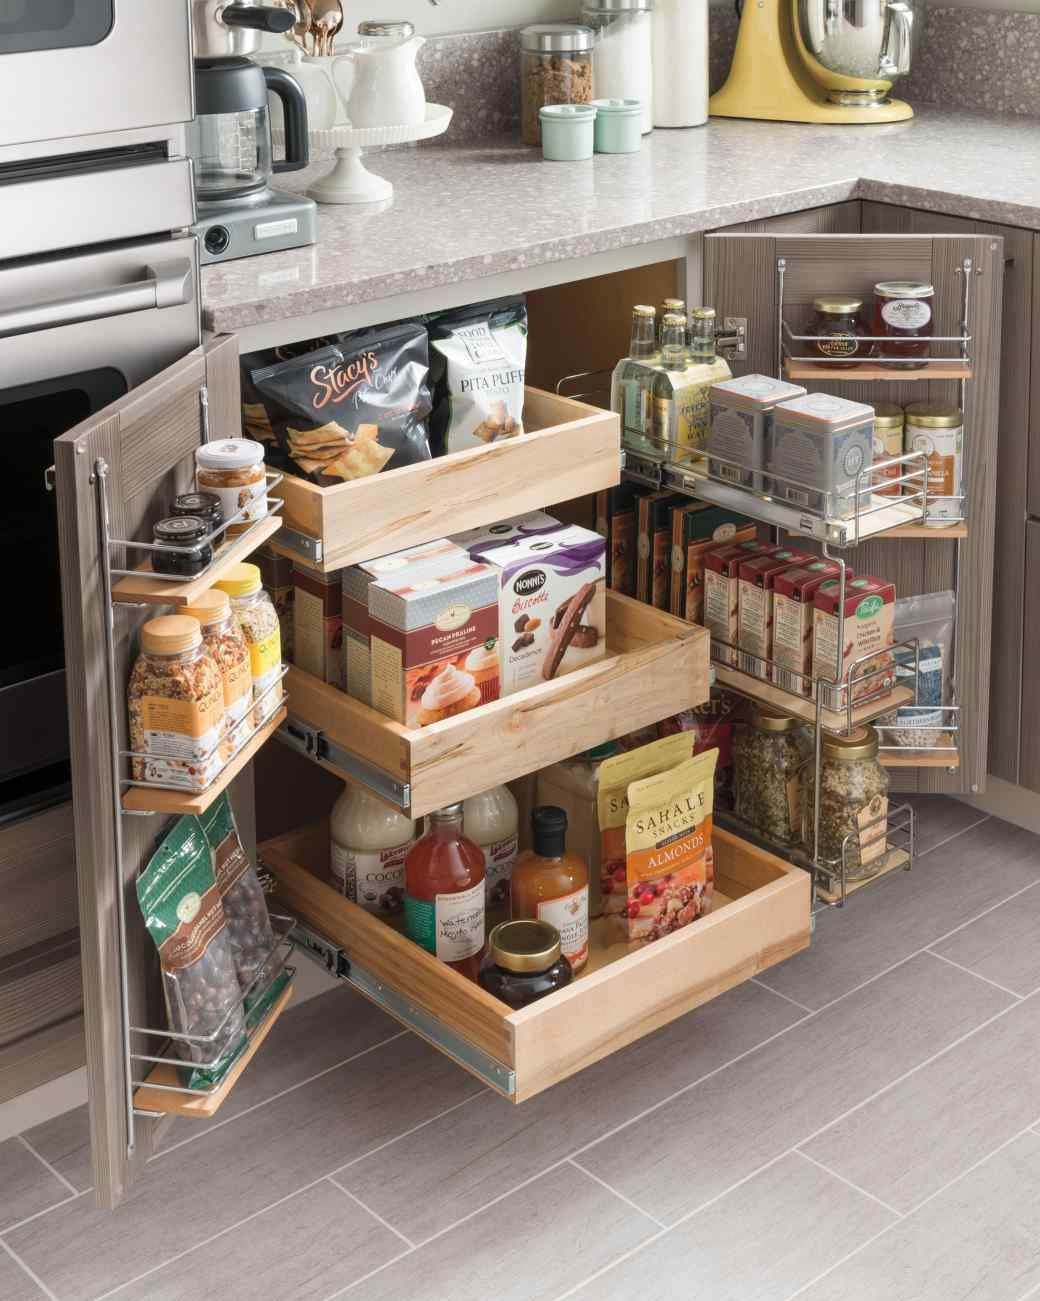 Small kitchen storage ideas for a more efficient space Maximize kitchen storage